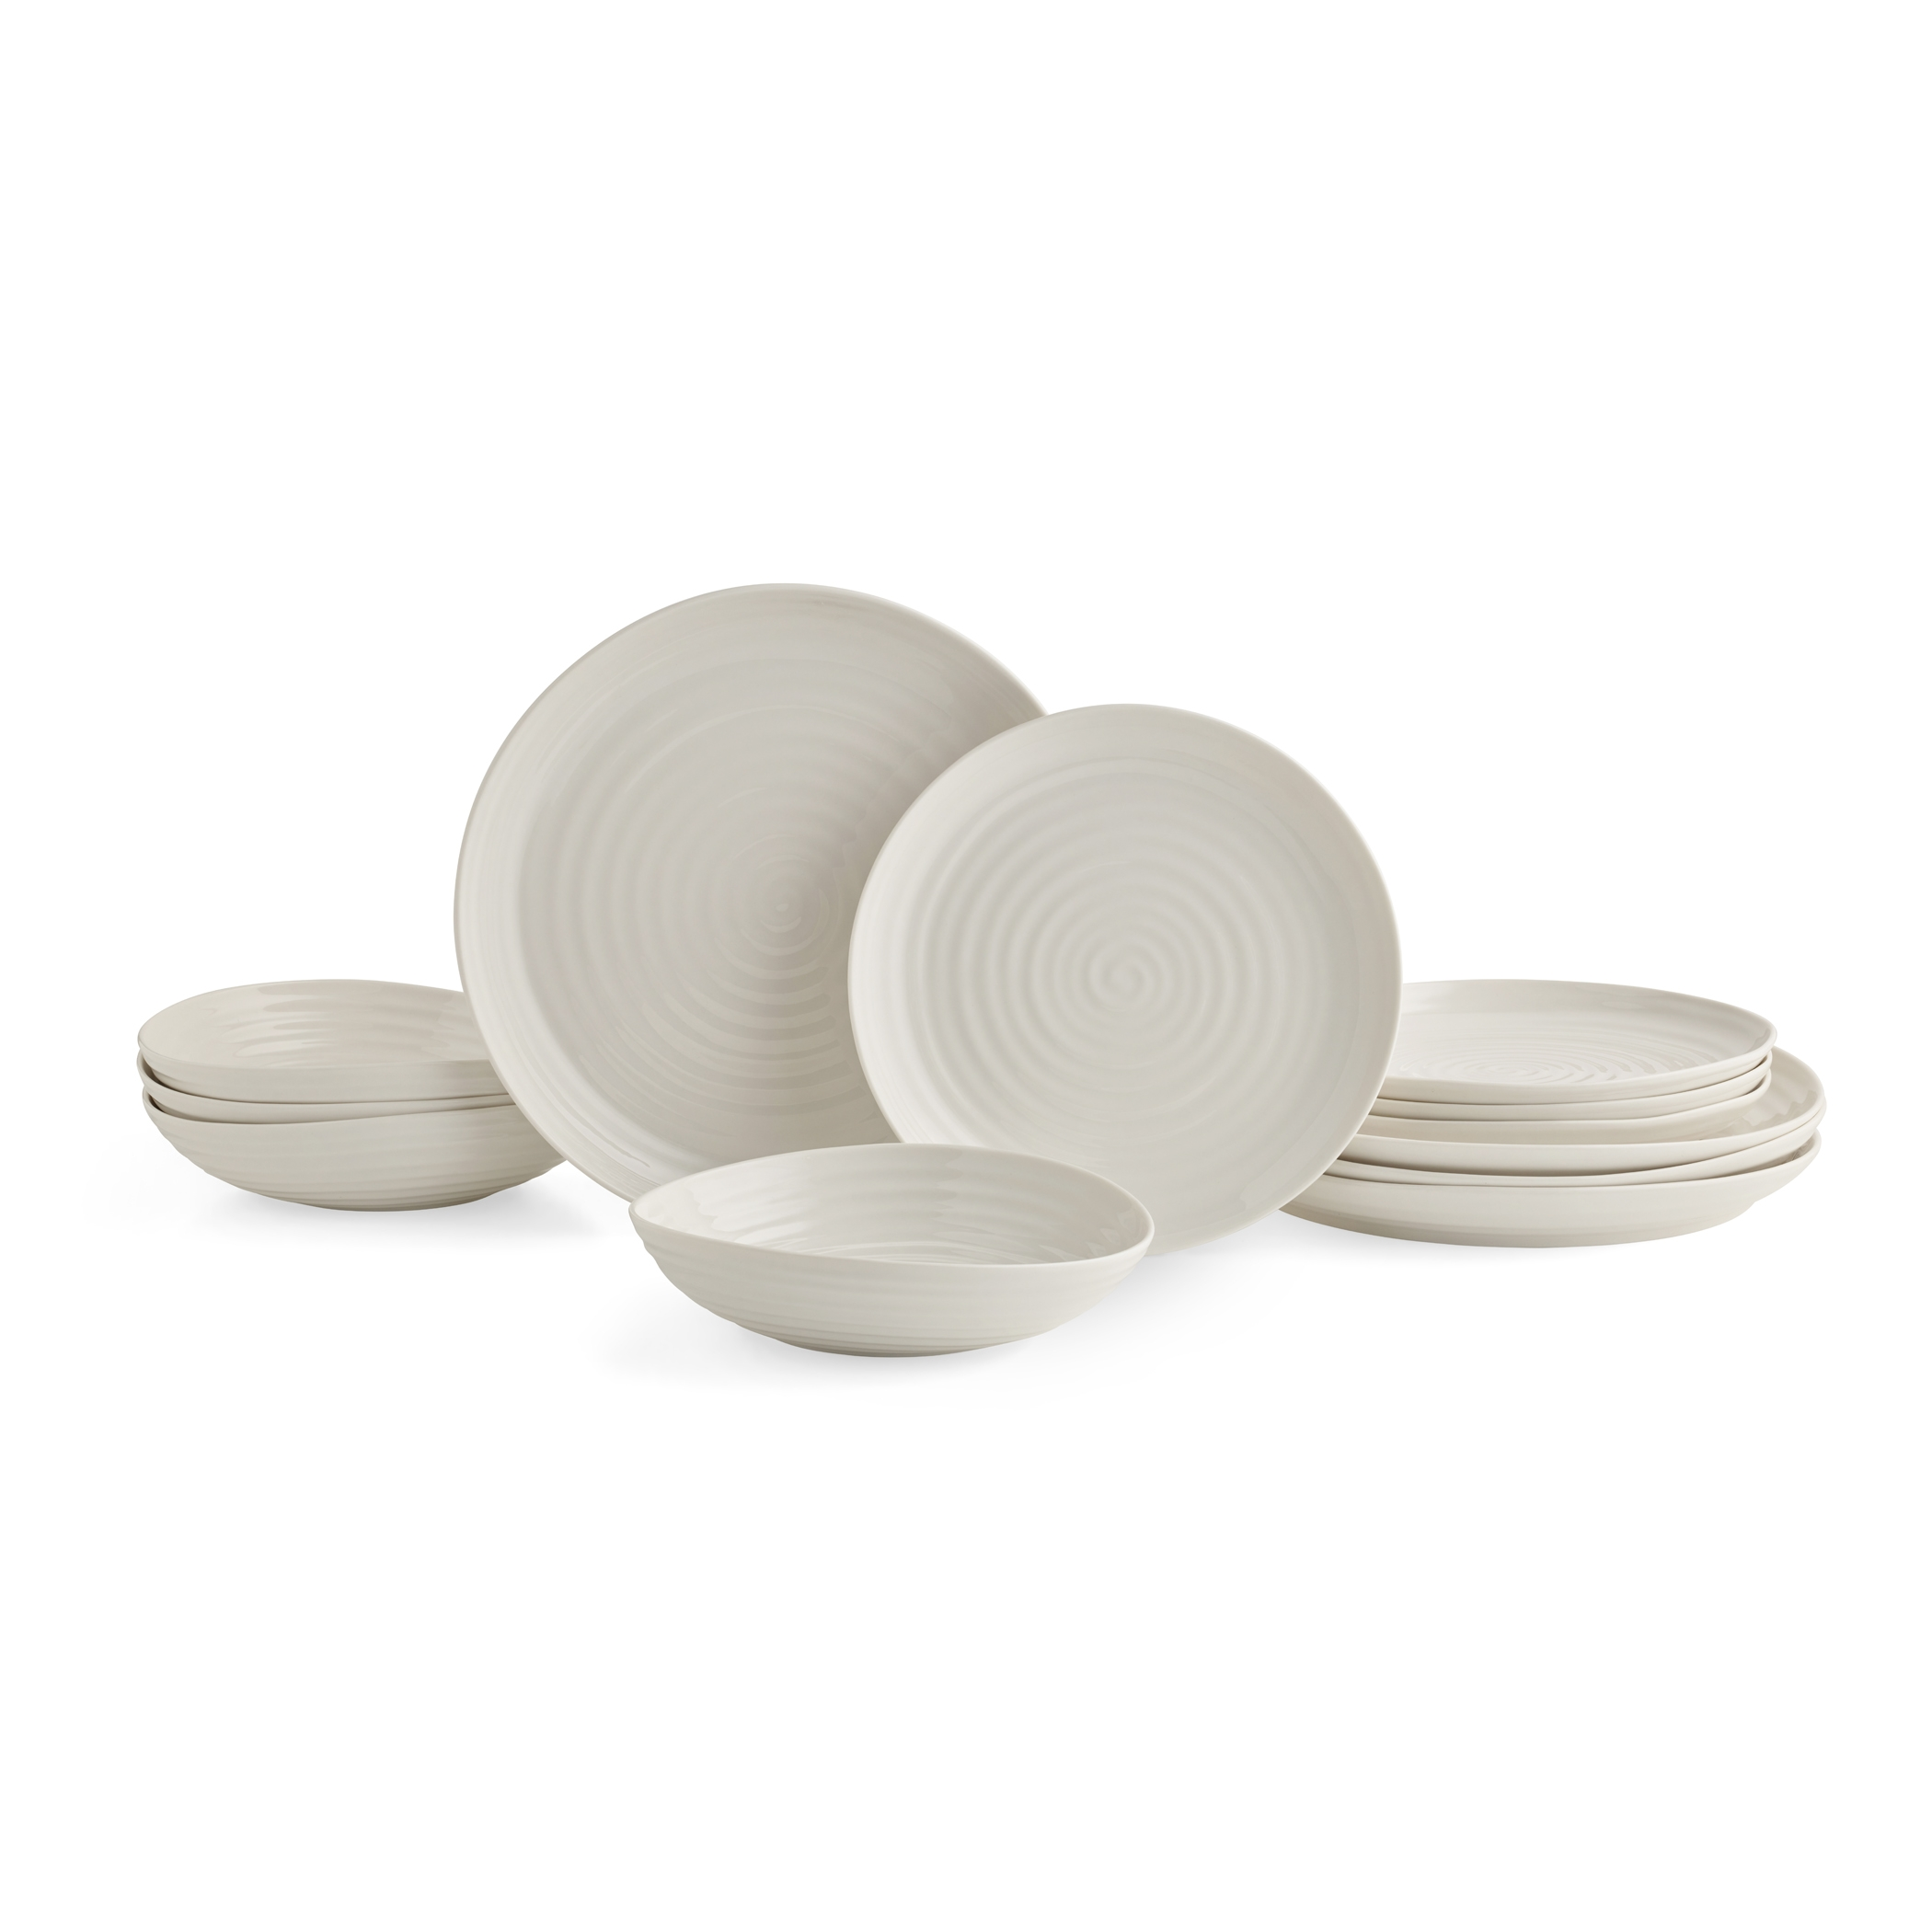 포트메리온 '소피 콘란' 12피스 세트 Portmeirion Sophie Conran White 12 Piece Set Coupe Shape